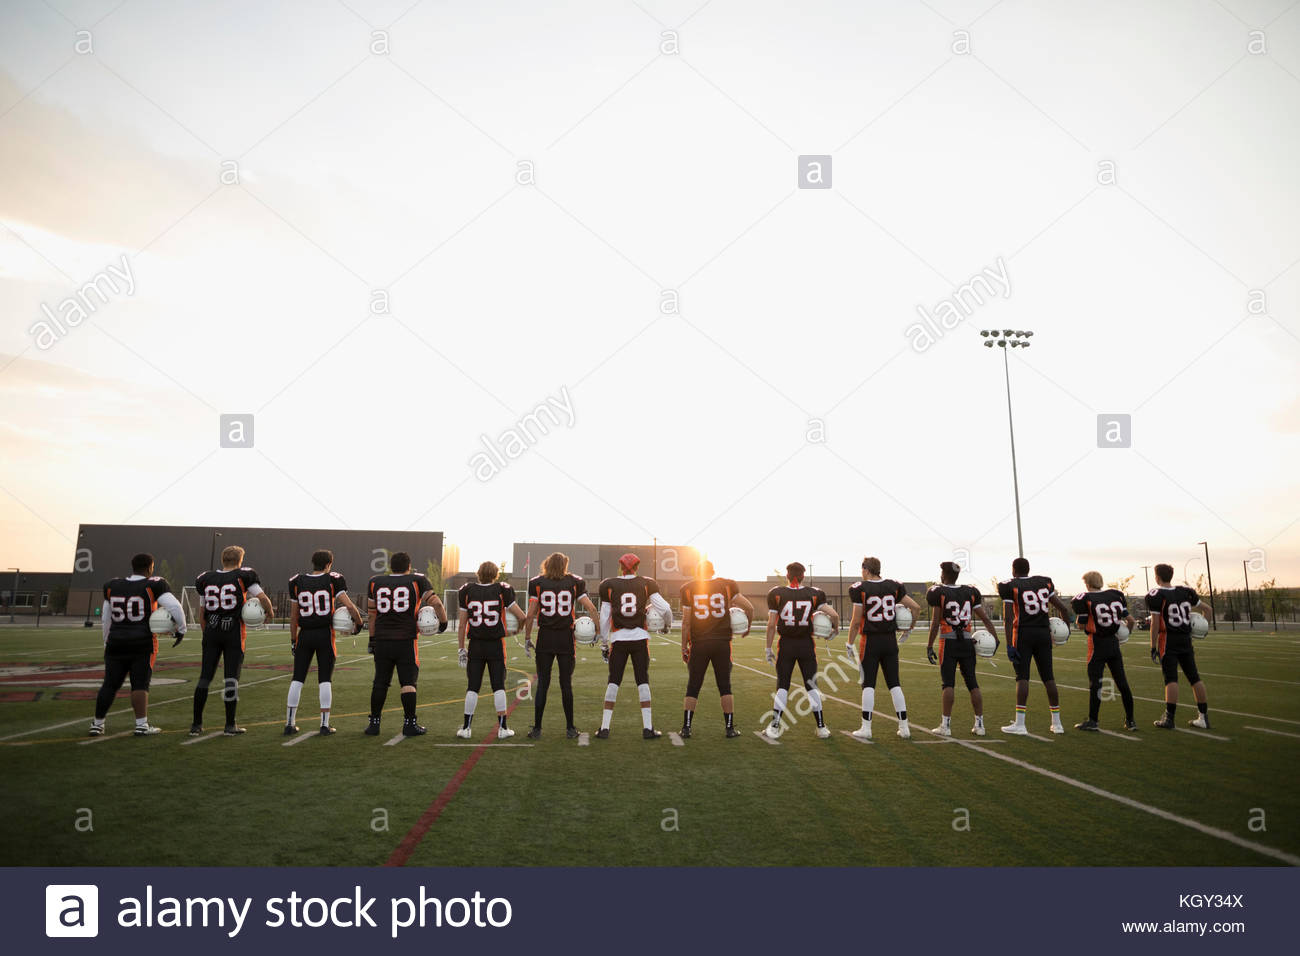 Vue arrière teenage boy high school football team standing in a row sur terrain de football Photo Stock